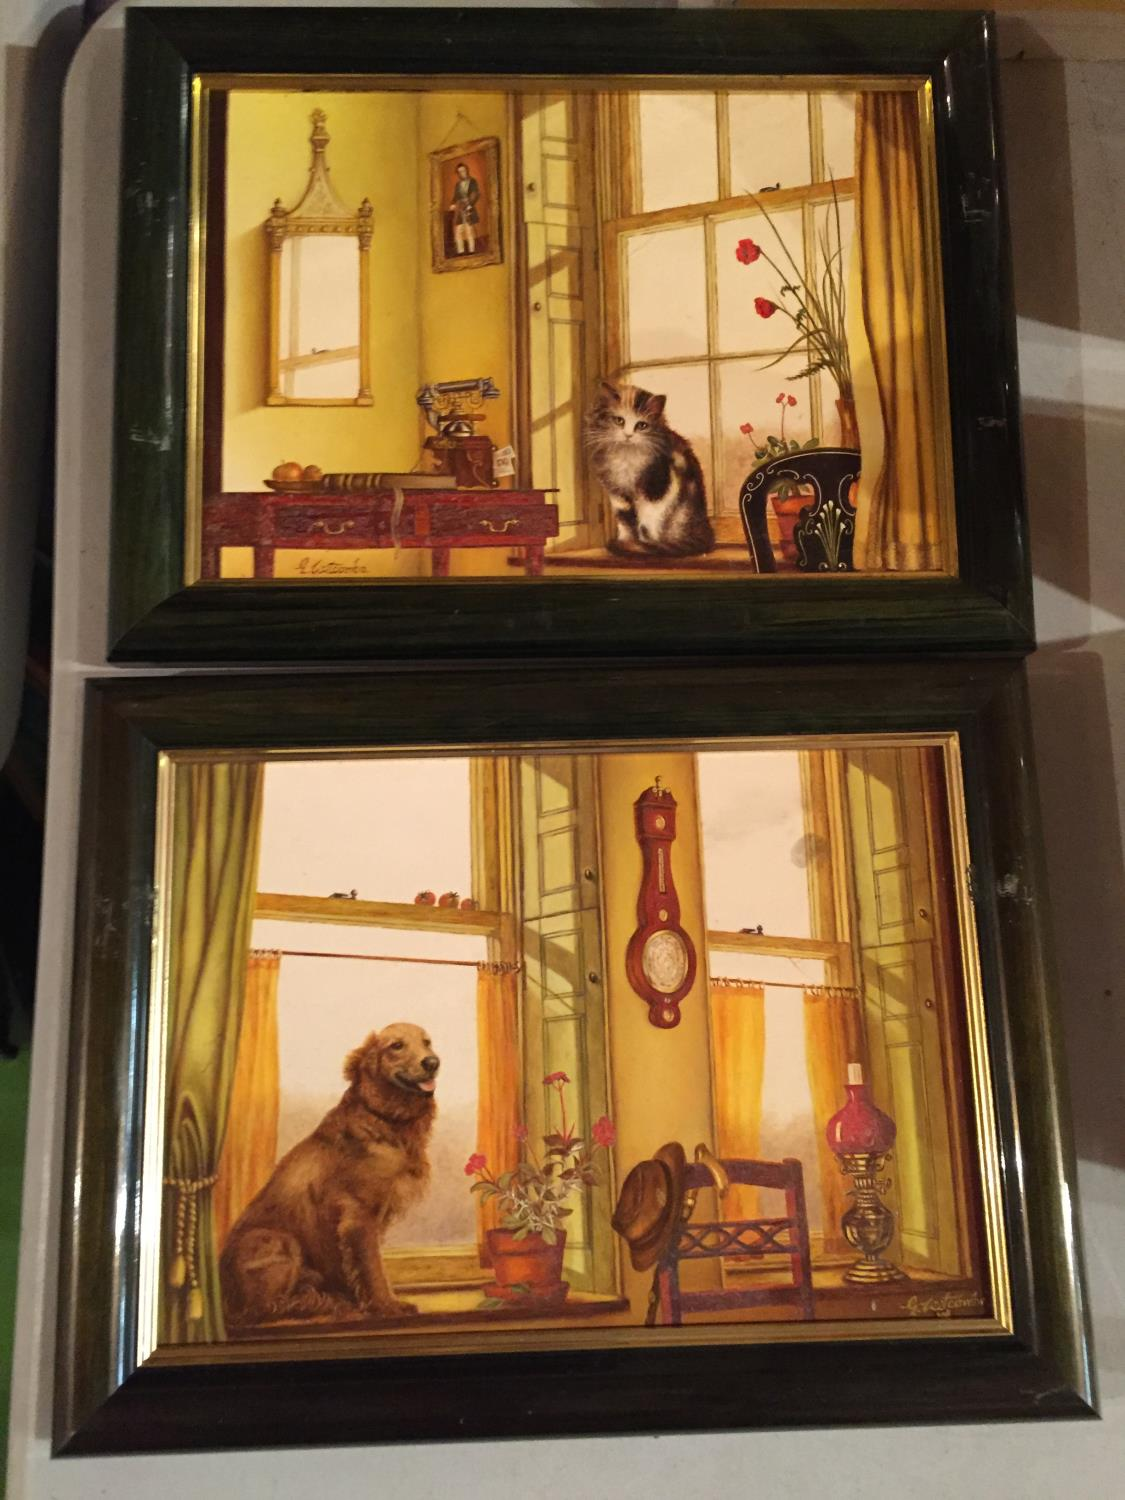 TWO FRAMED PAINTINGS OF A CAT IN A WINDOW AND A DOG IN A WINDOW - Image 2 of 6